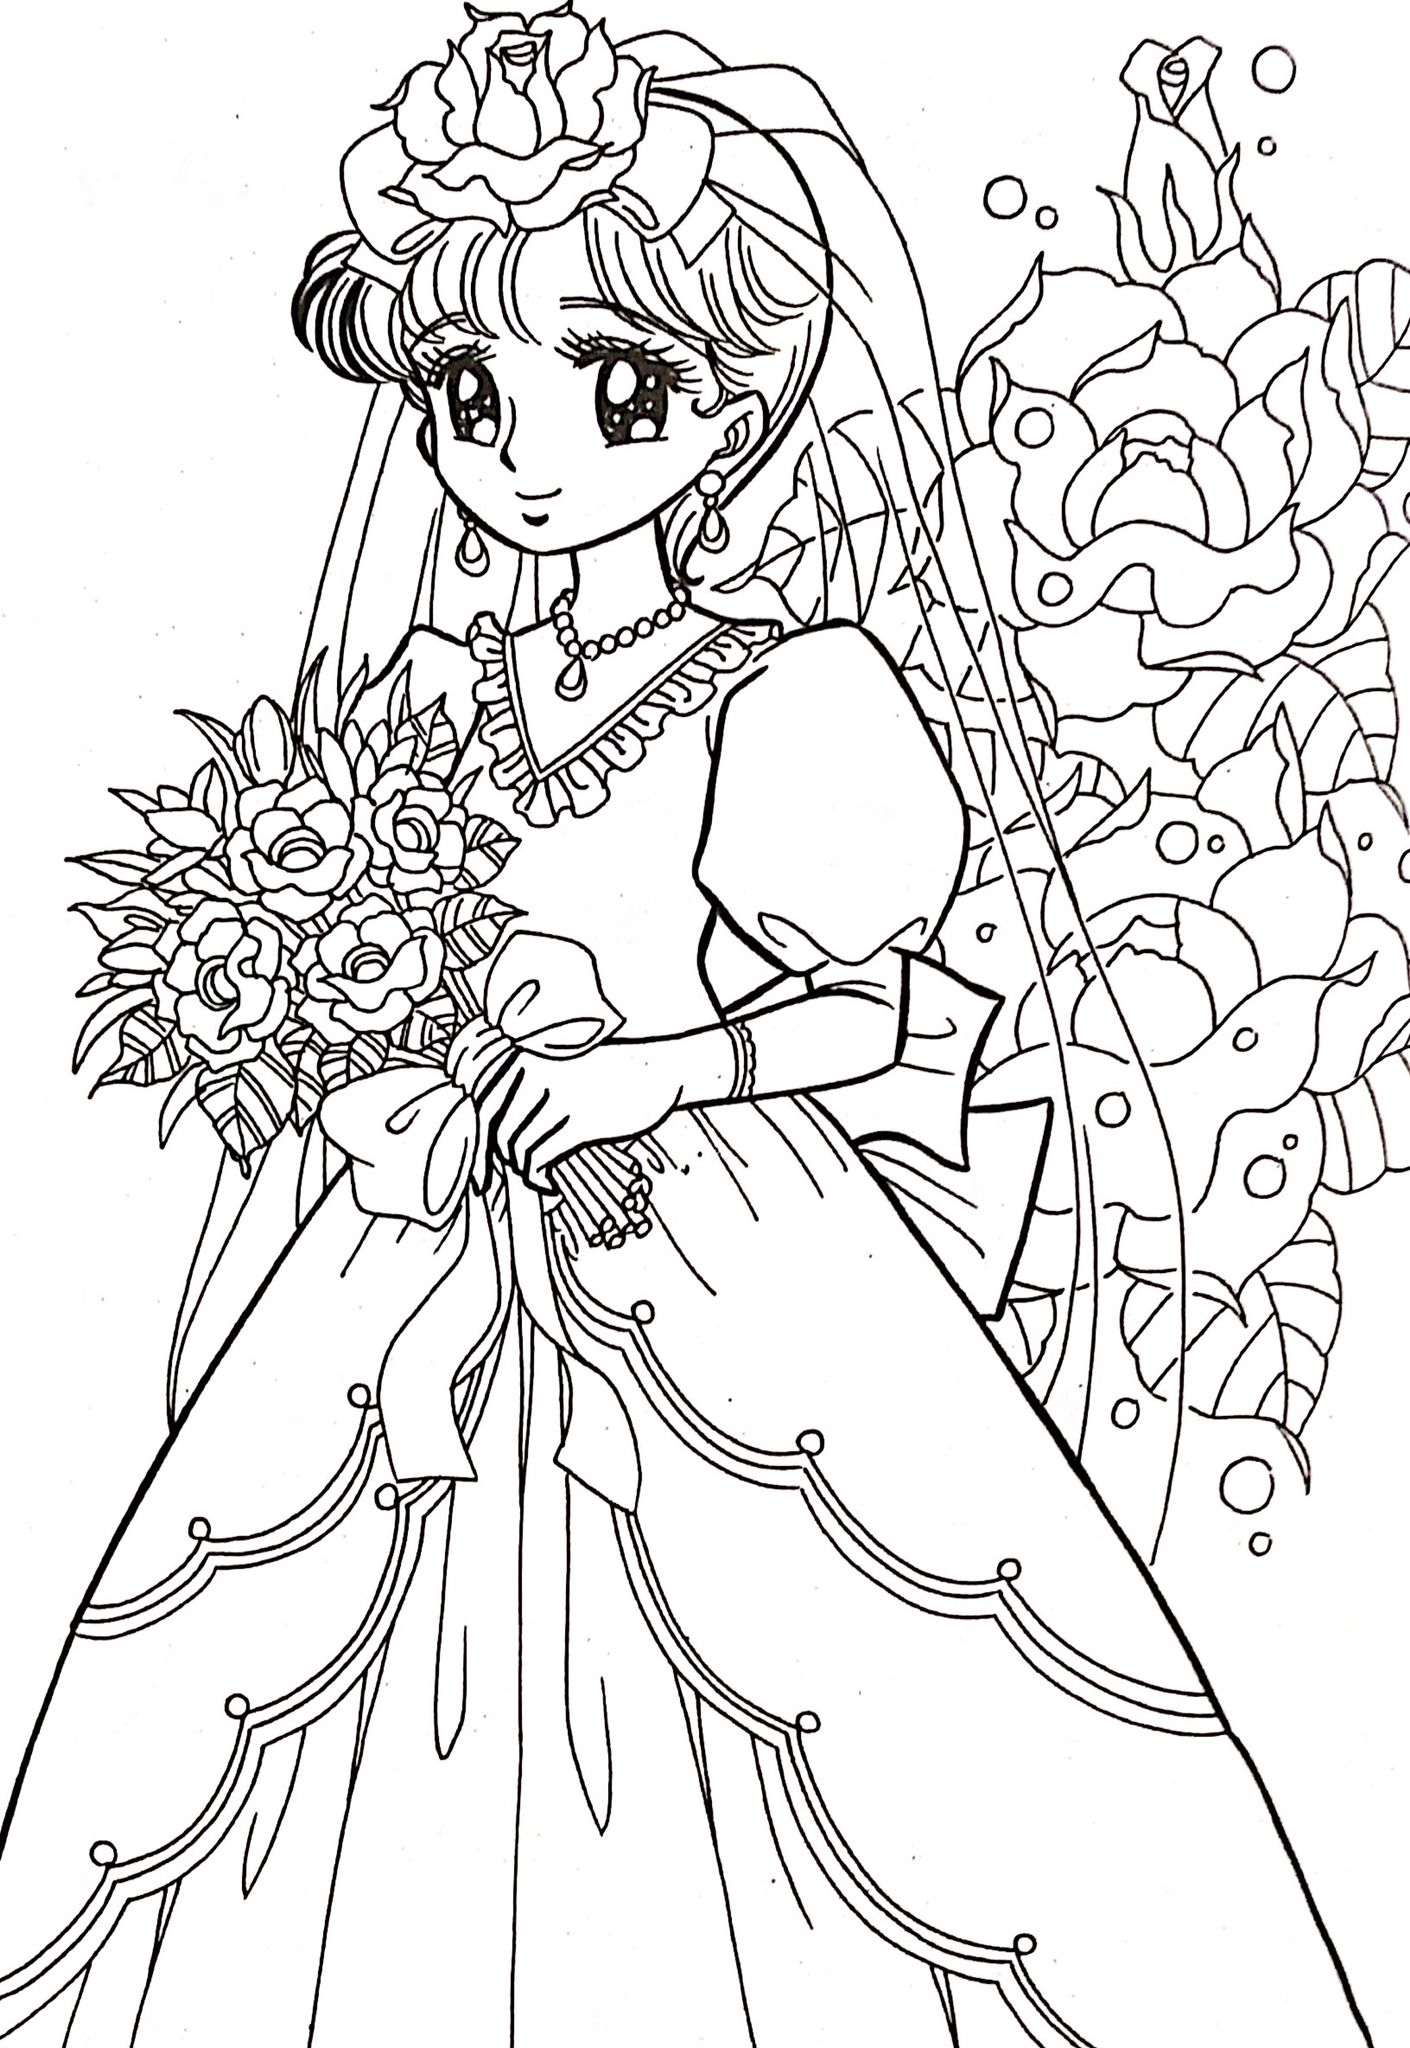 Coloring | Cute coloring pages, Animal coloring pages ...